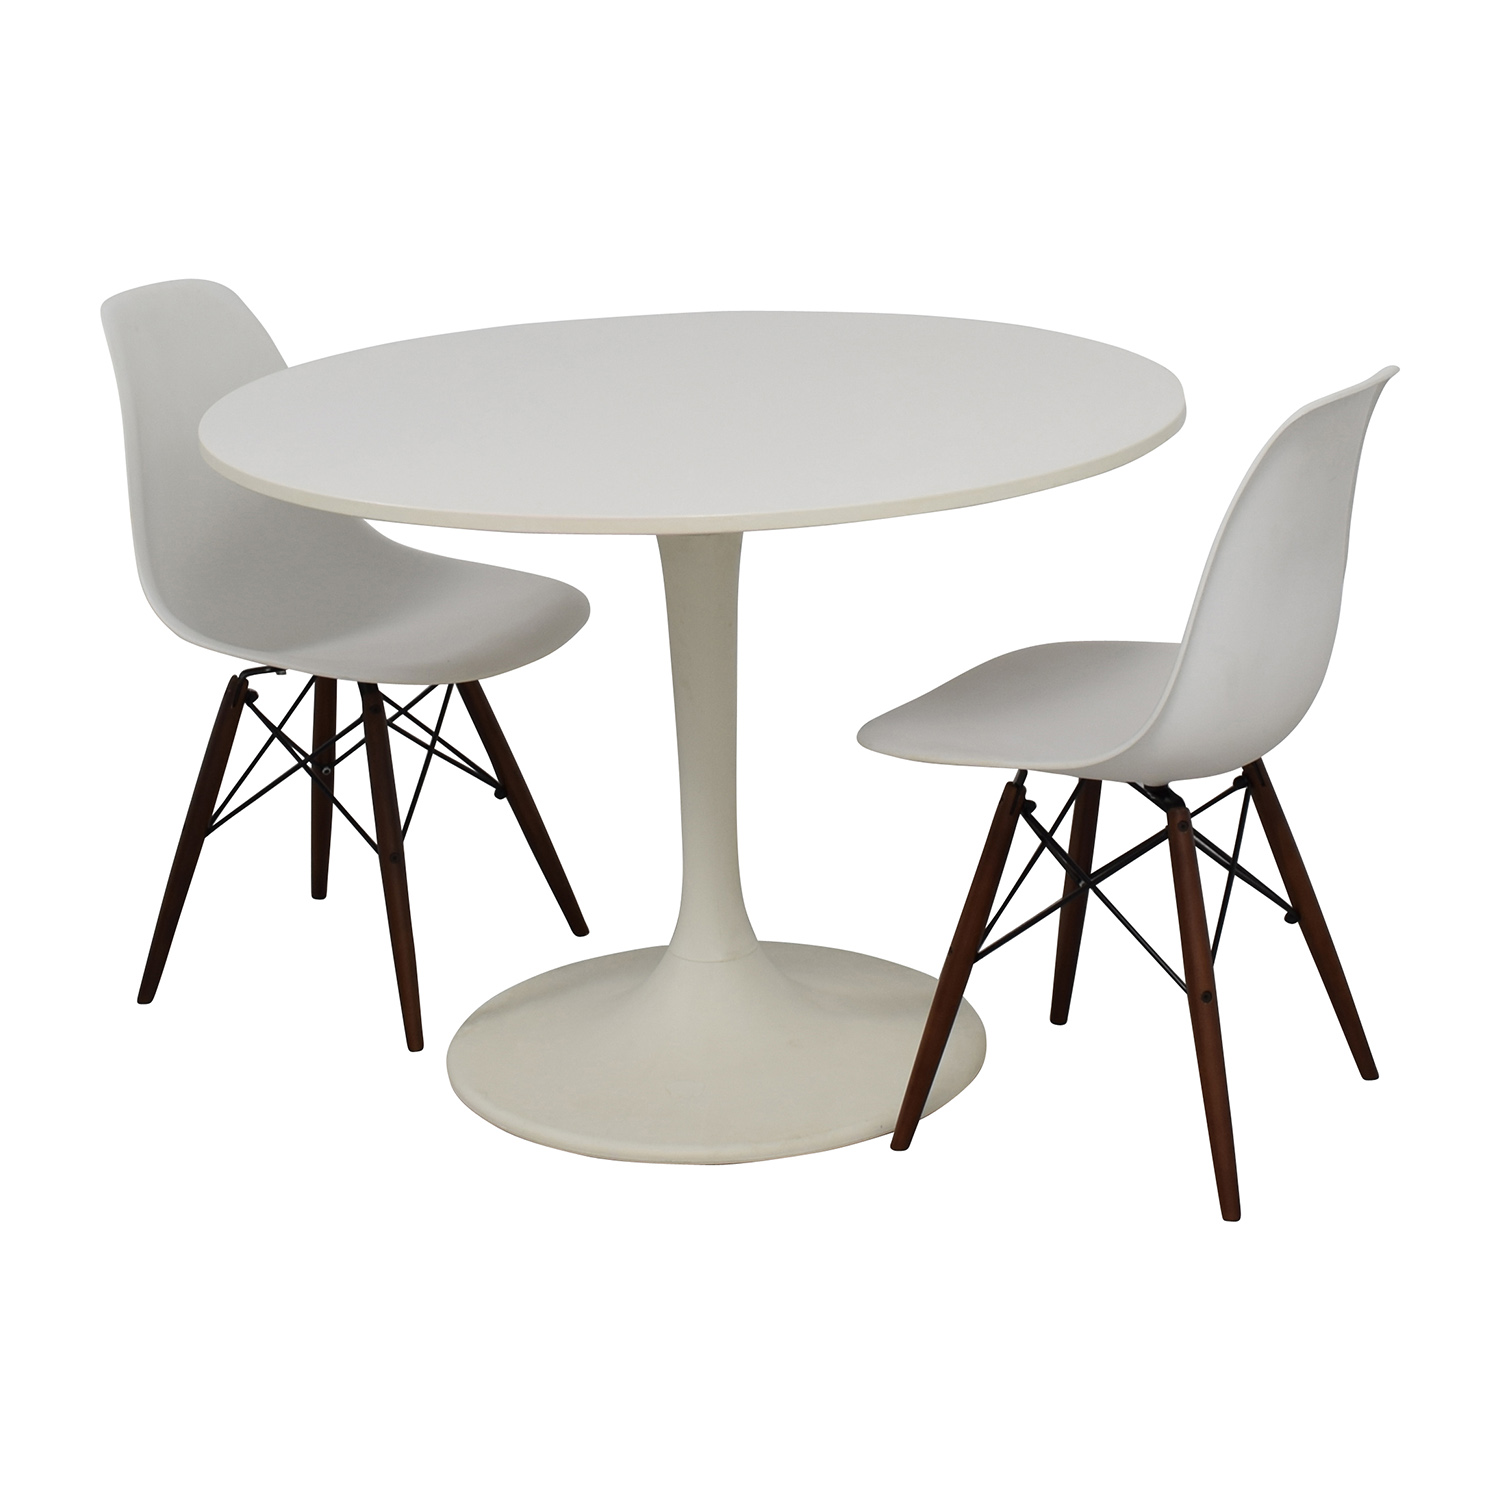 OFF Vortex Tulip Table And Vortex Chair Set Tables - Chairs for tulip table